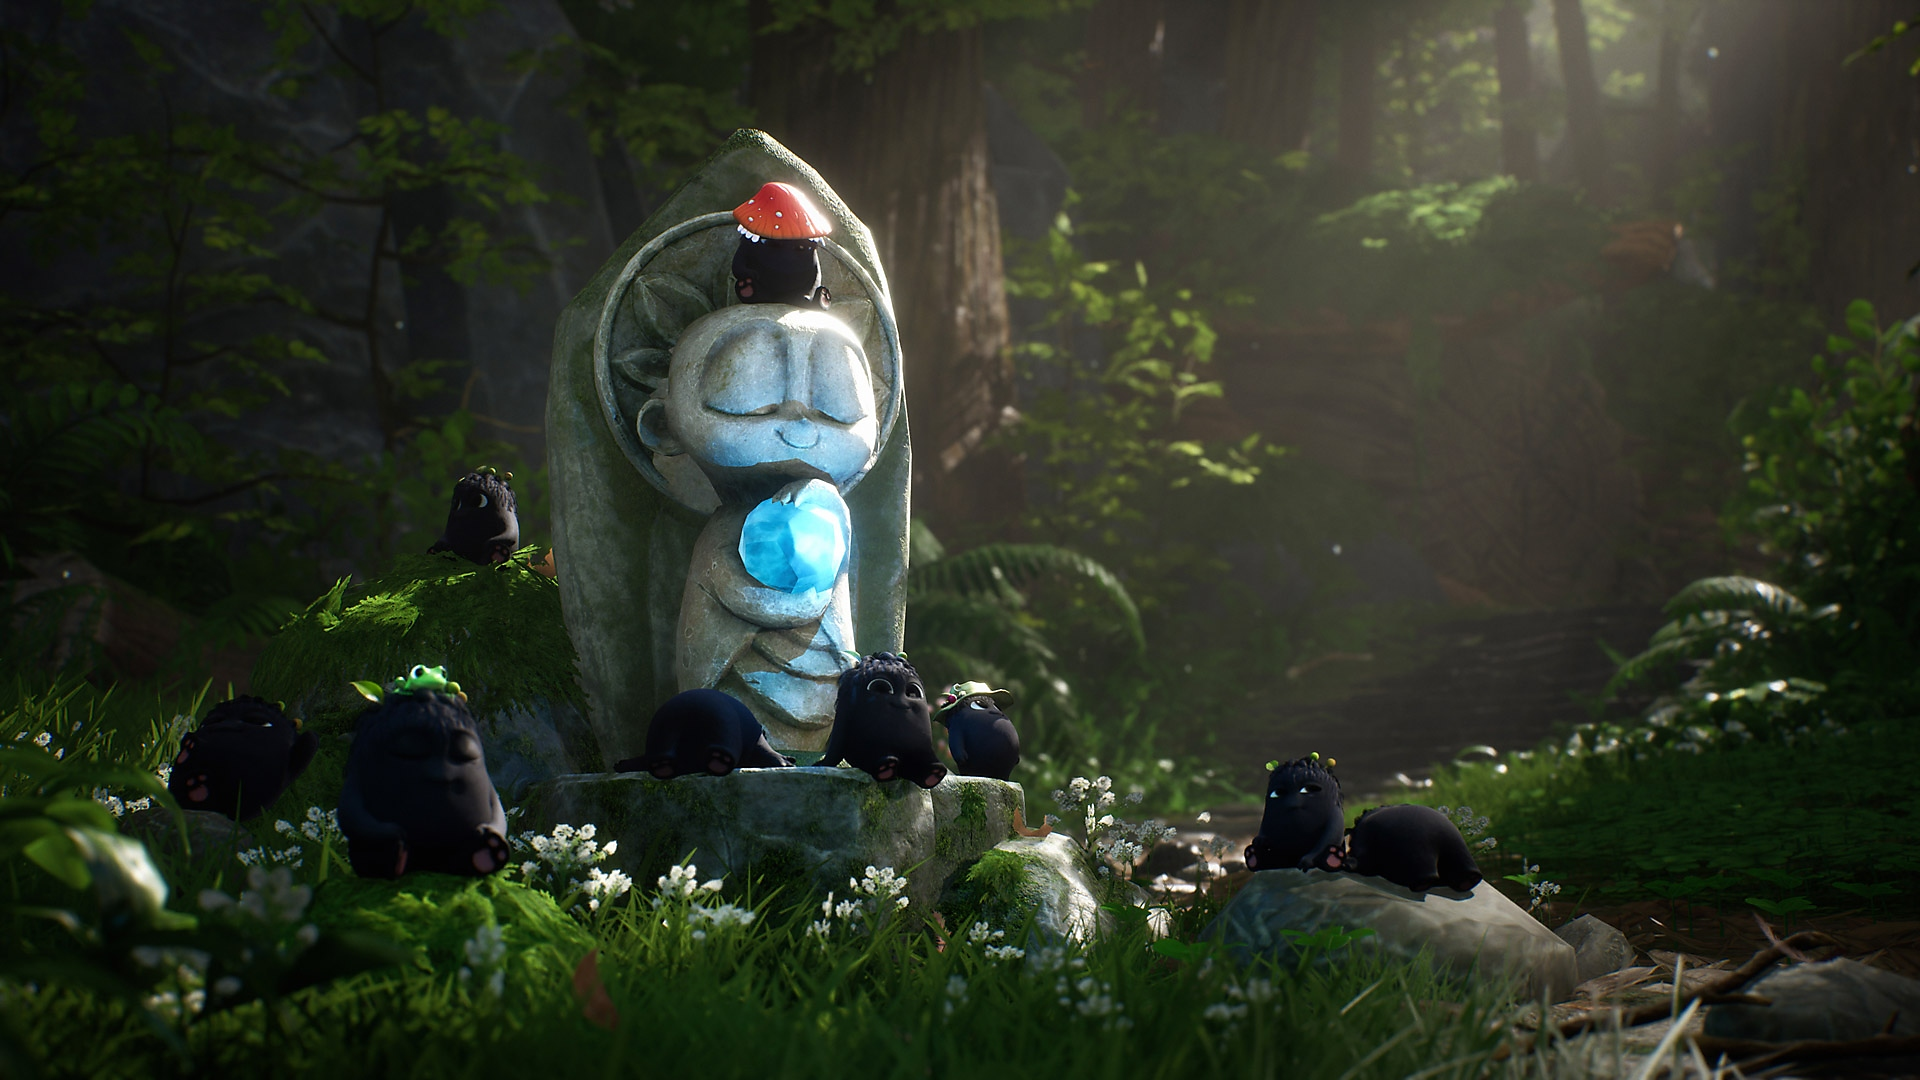 Concept artwork of Rot laying around a stone statue in the forest